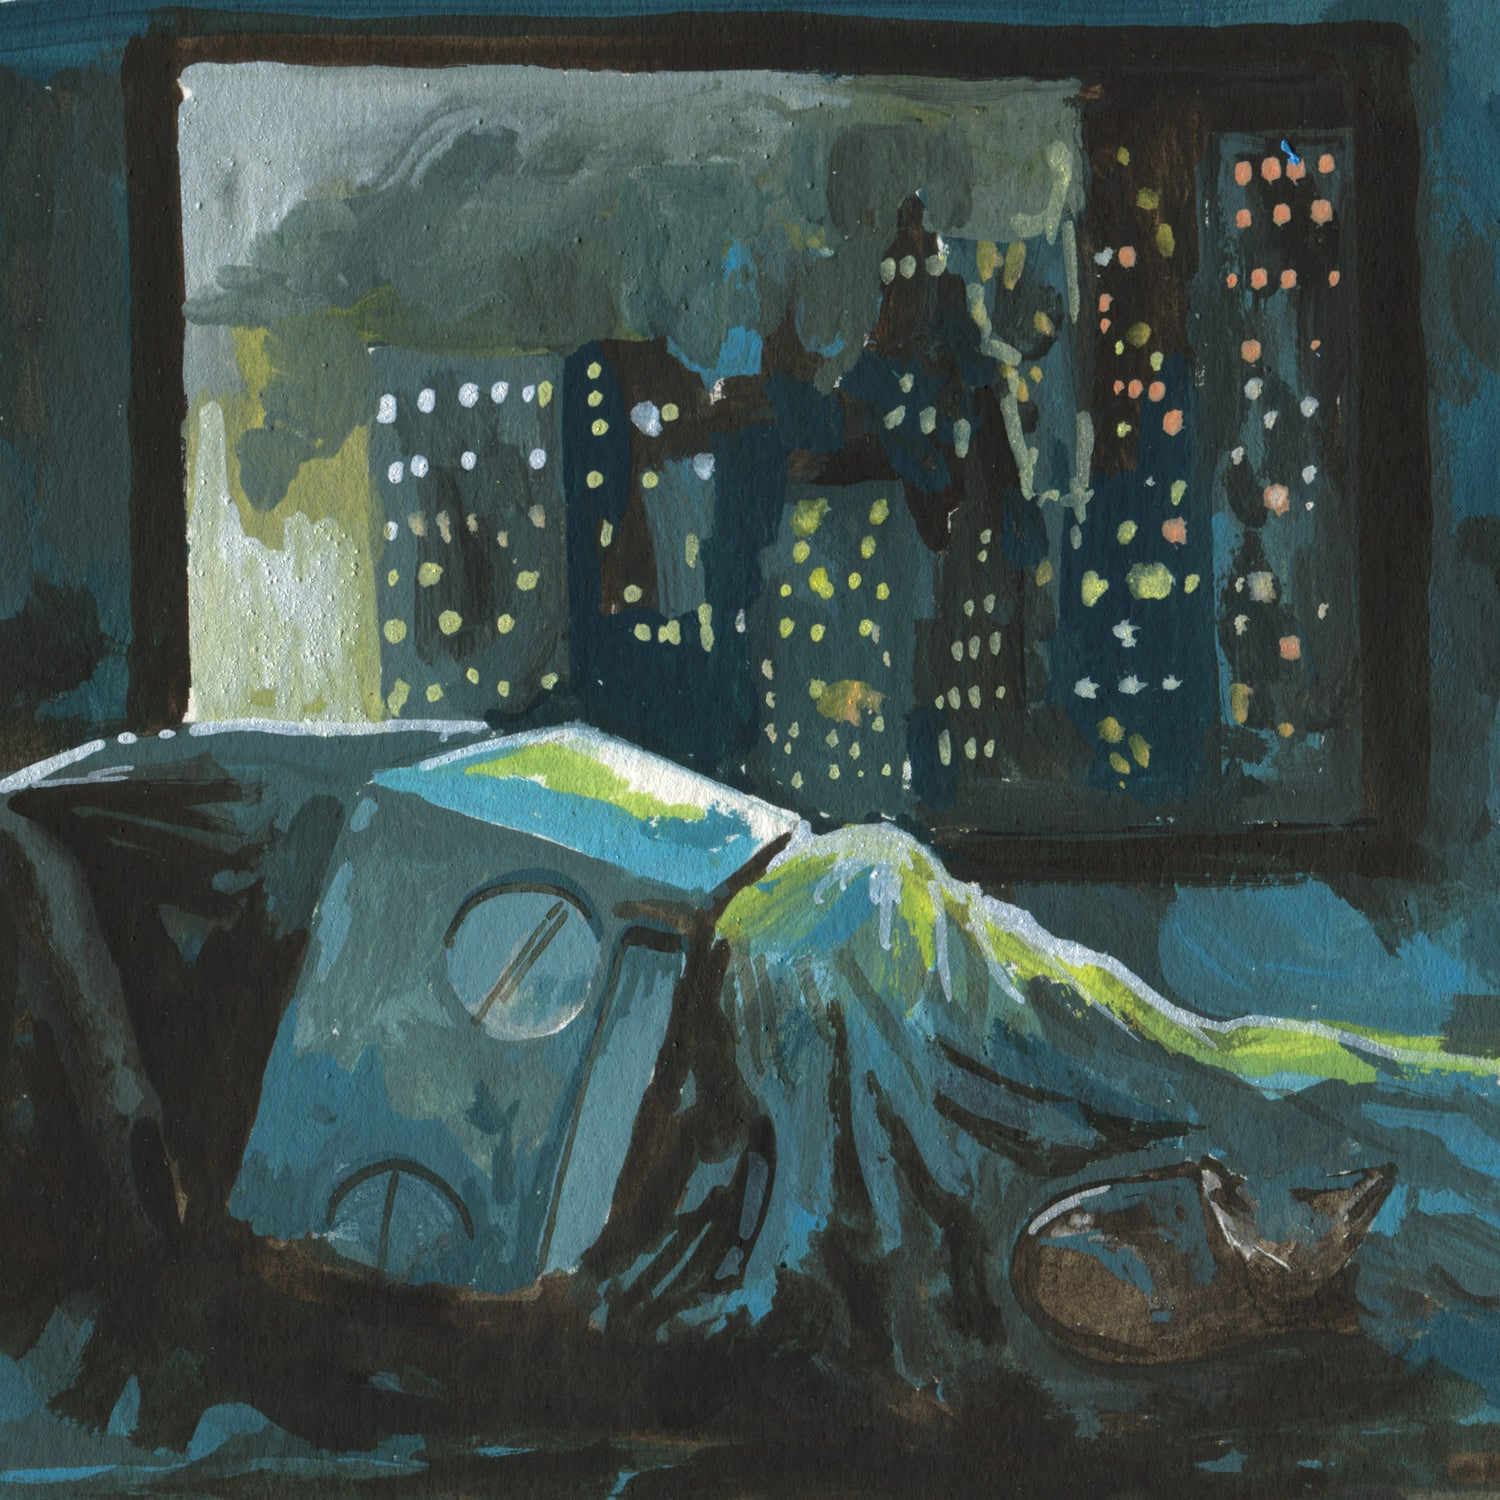 Image of City Sleep